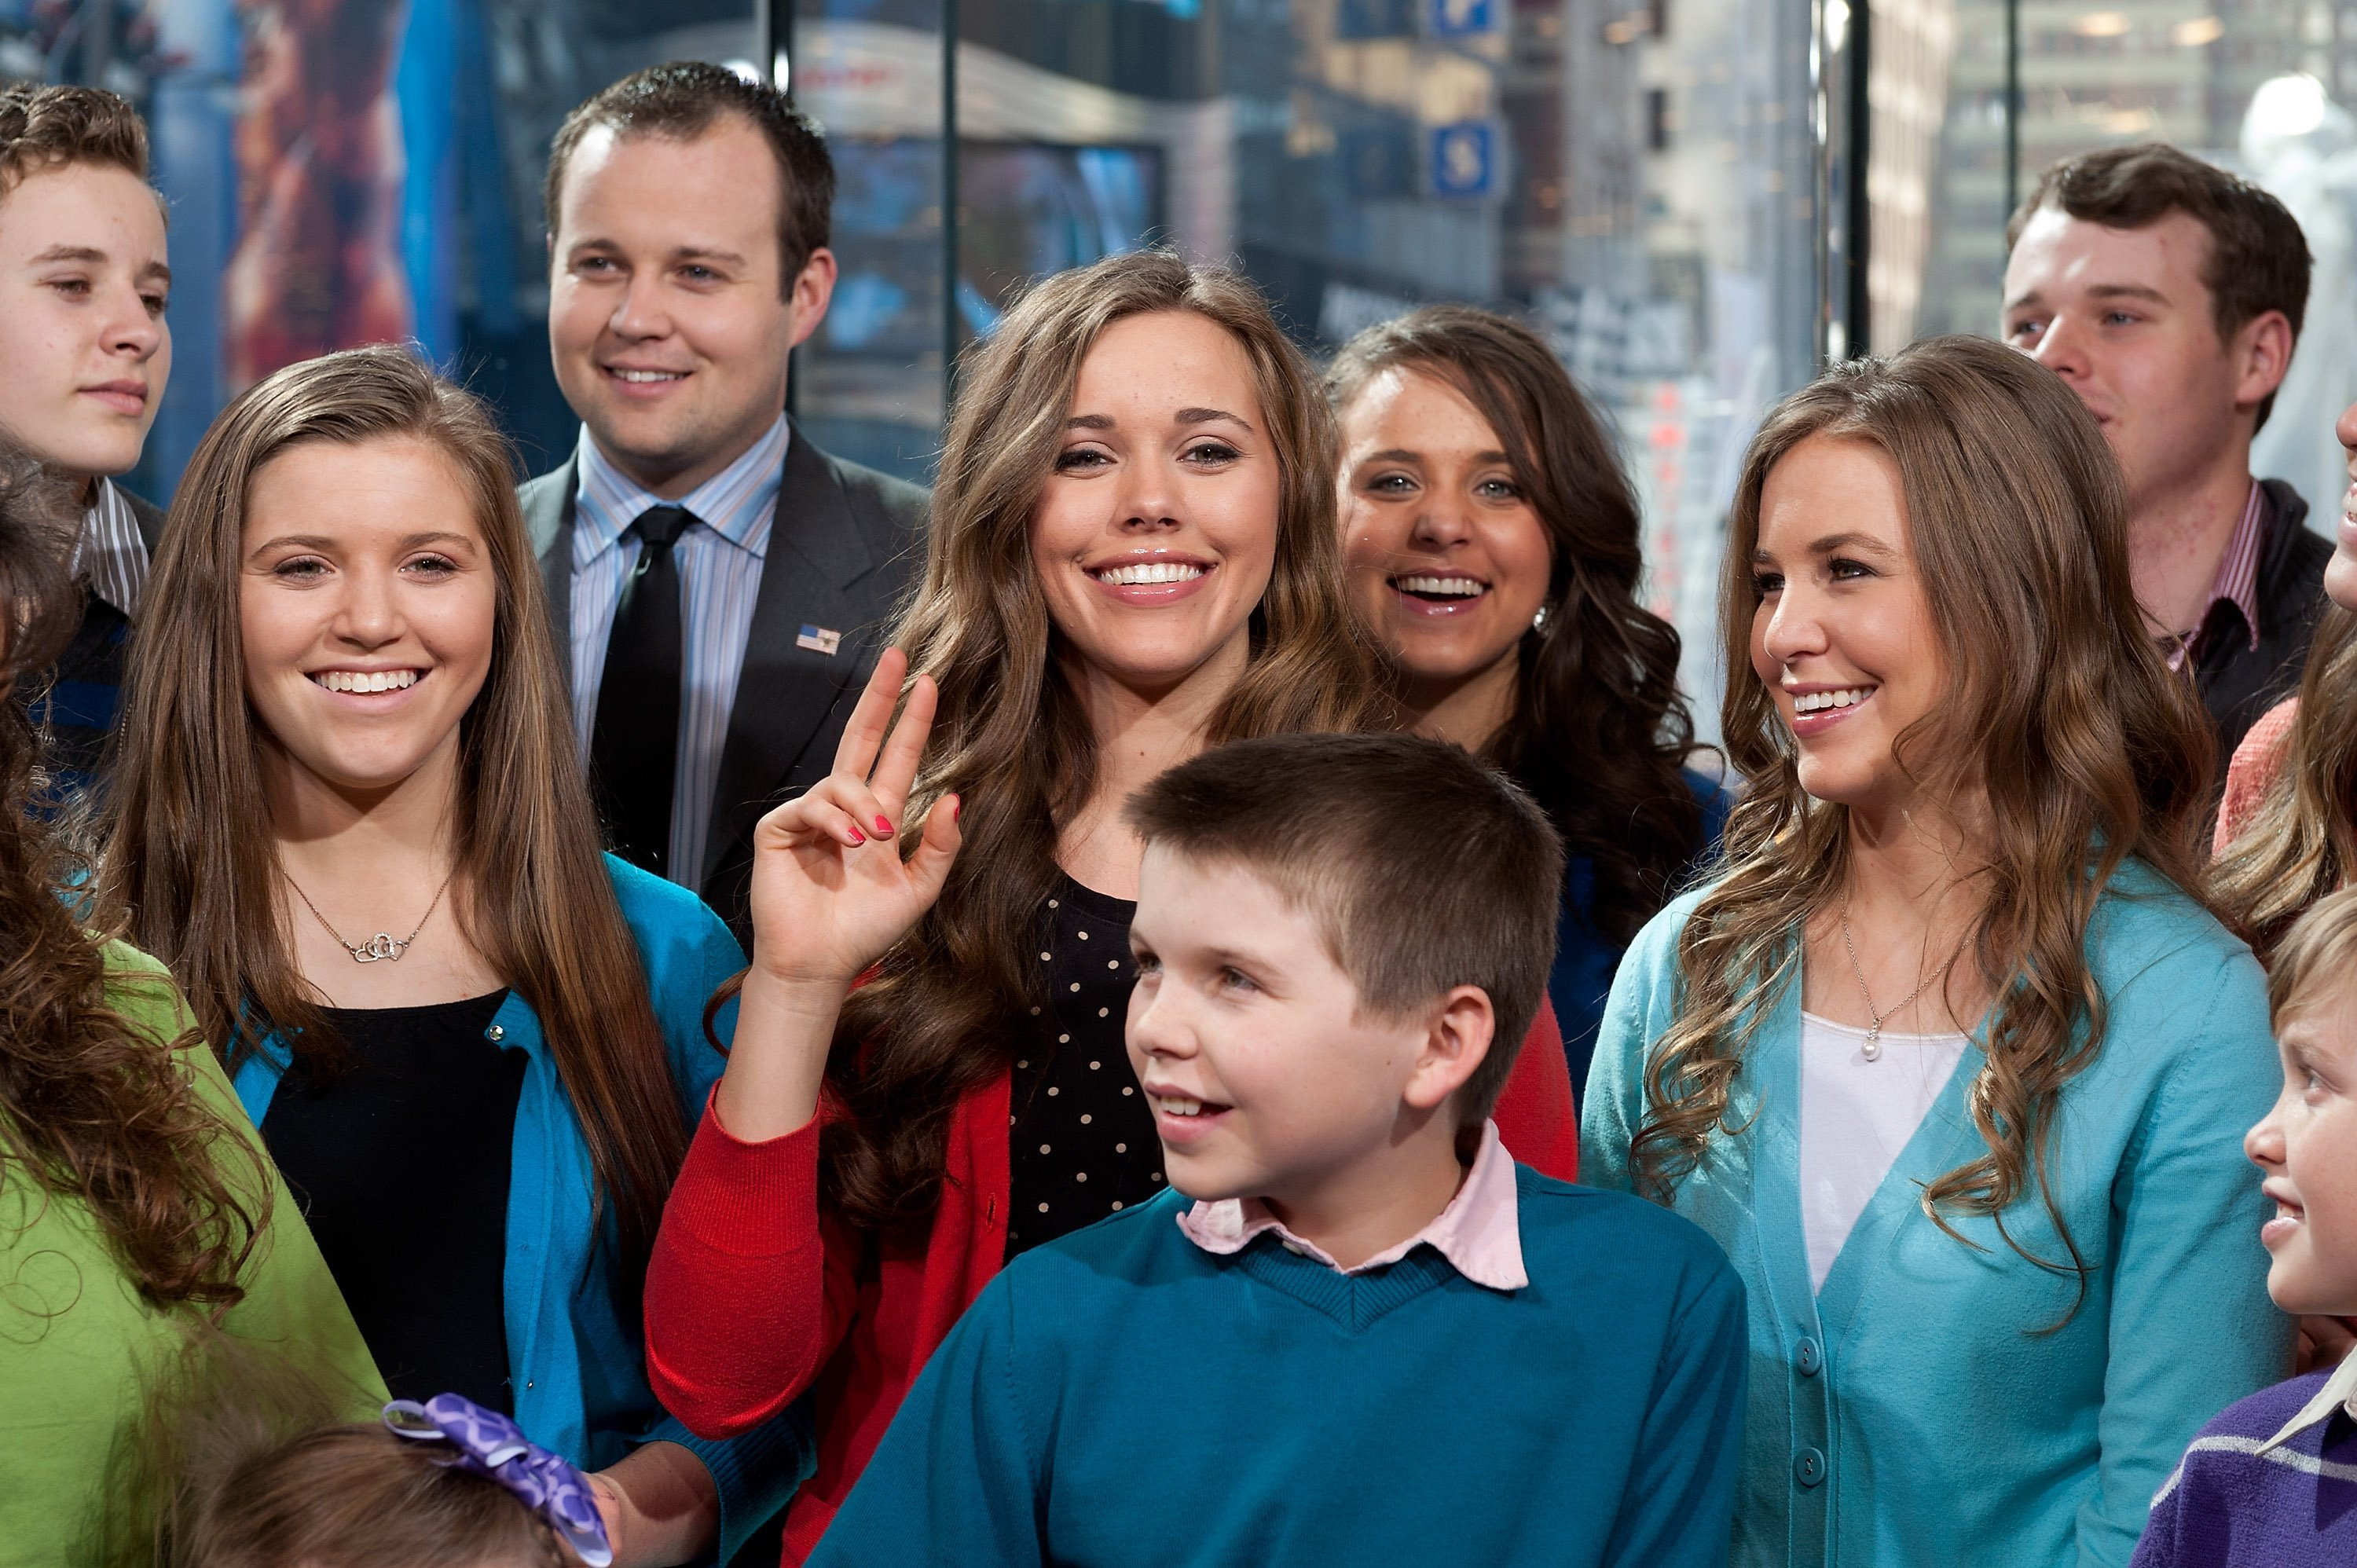 Jessa Duggar and the rest of the Duggar Family on March 11, 2014 in New York City | Photo: Getty Images